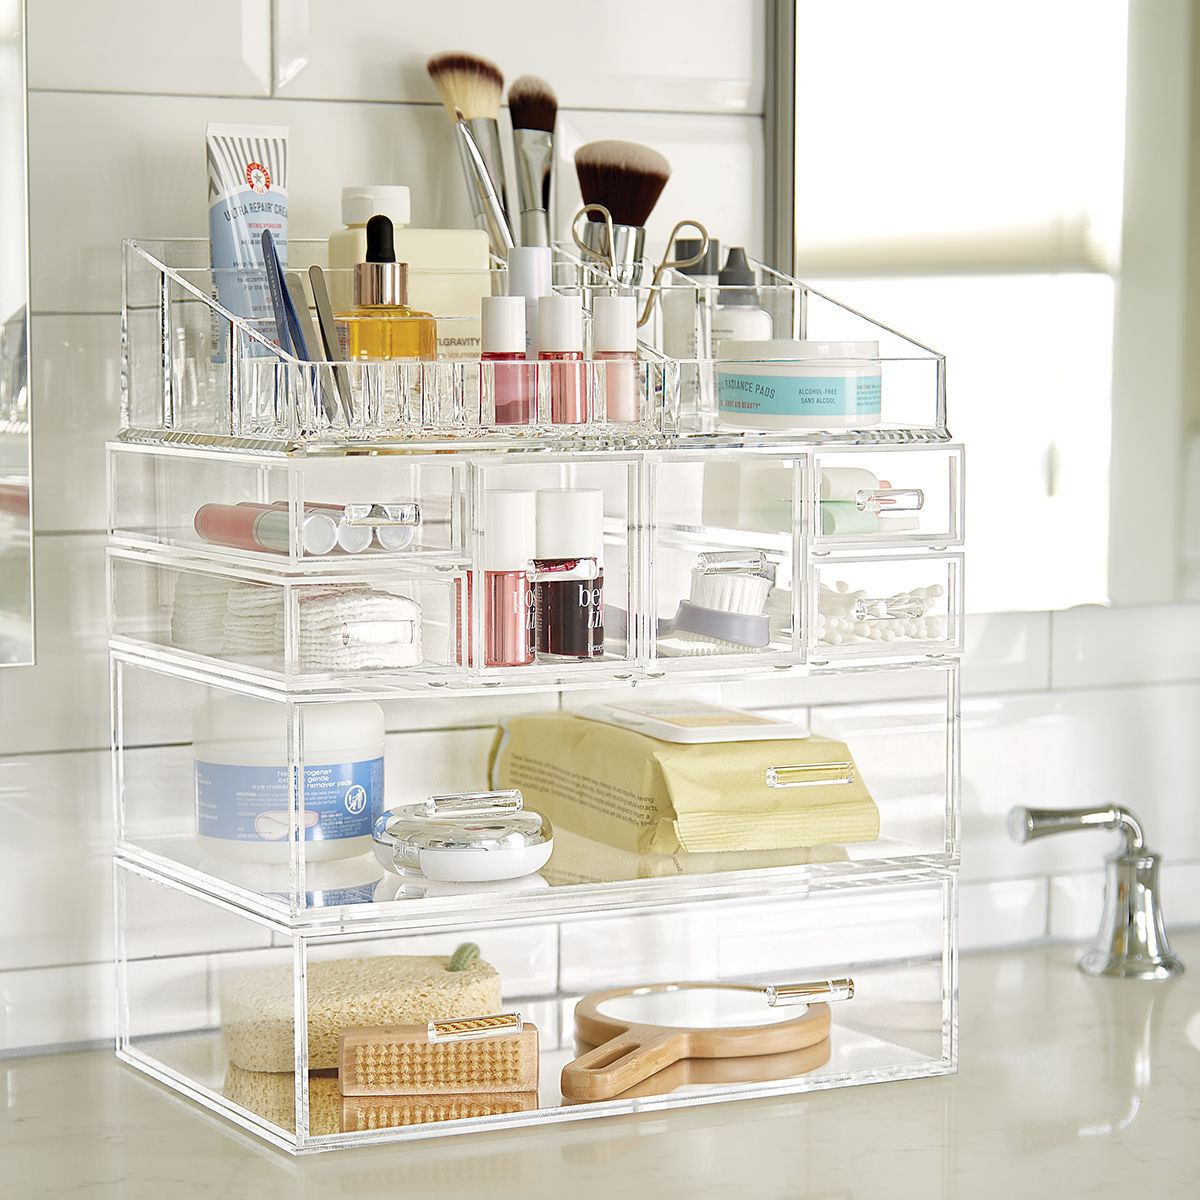 Large Acrylic Makeup Organizer & Acrylic Makeup Organizer - Large Acrylic Makeup Organizer | The ...